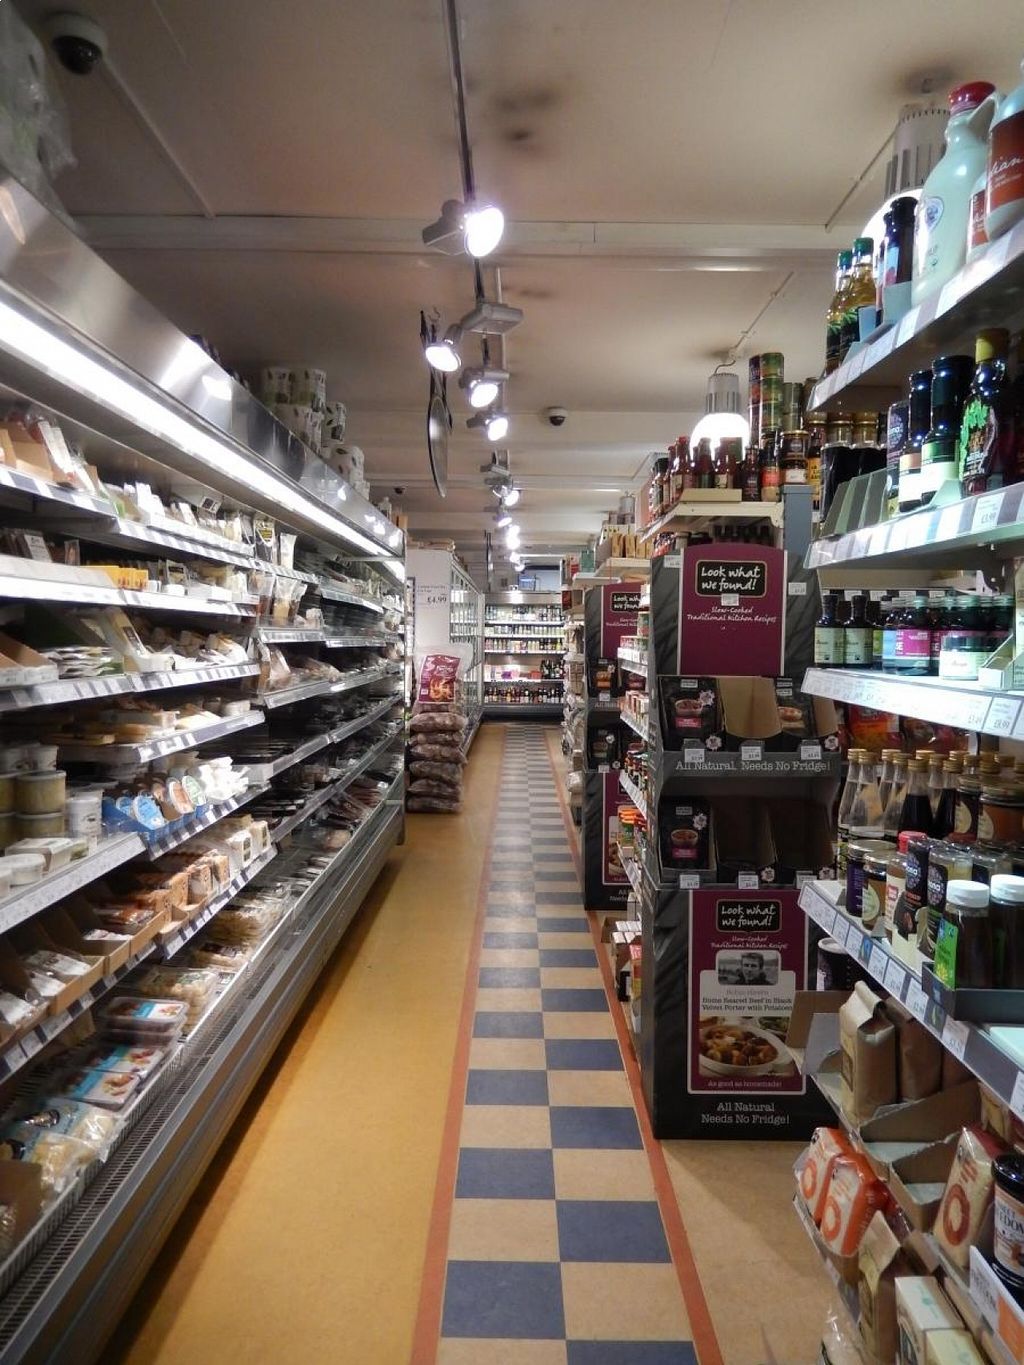 """Photo of The Natural Grocery Store  by <a href=""""/members/profile/CLRtraveller"""">CLRtraveller</a> <br/>interior <br/> August 21, 2015  - <a href='/contact/abuse/image/44432/114556'>Report</a>"""